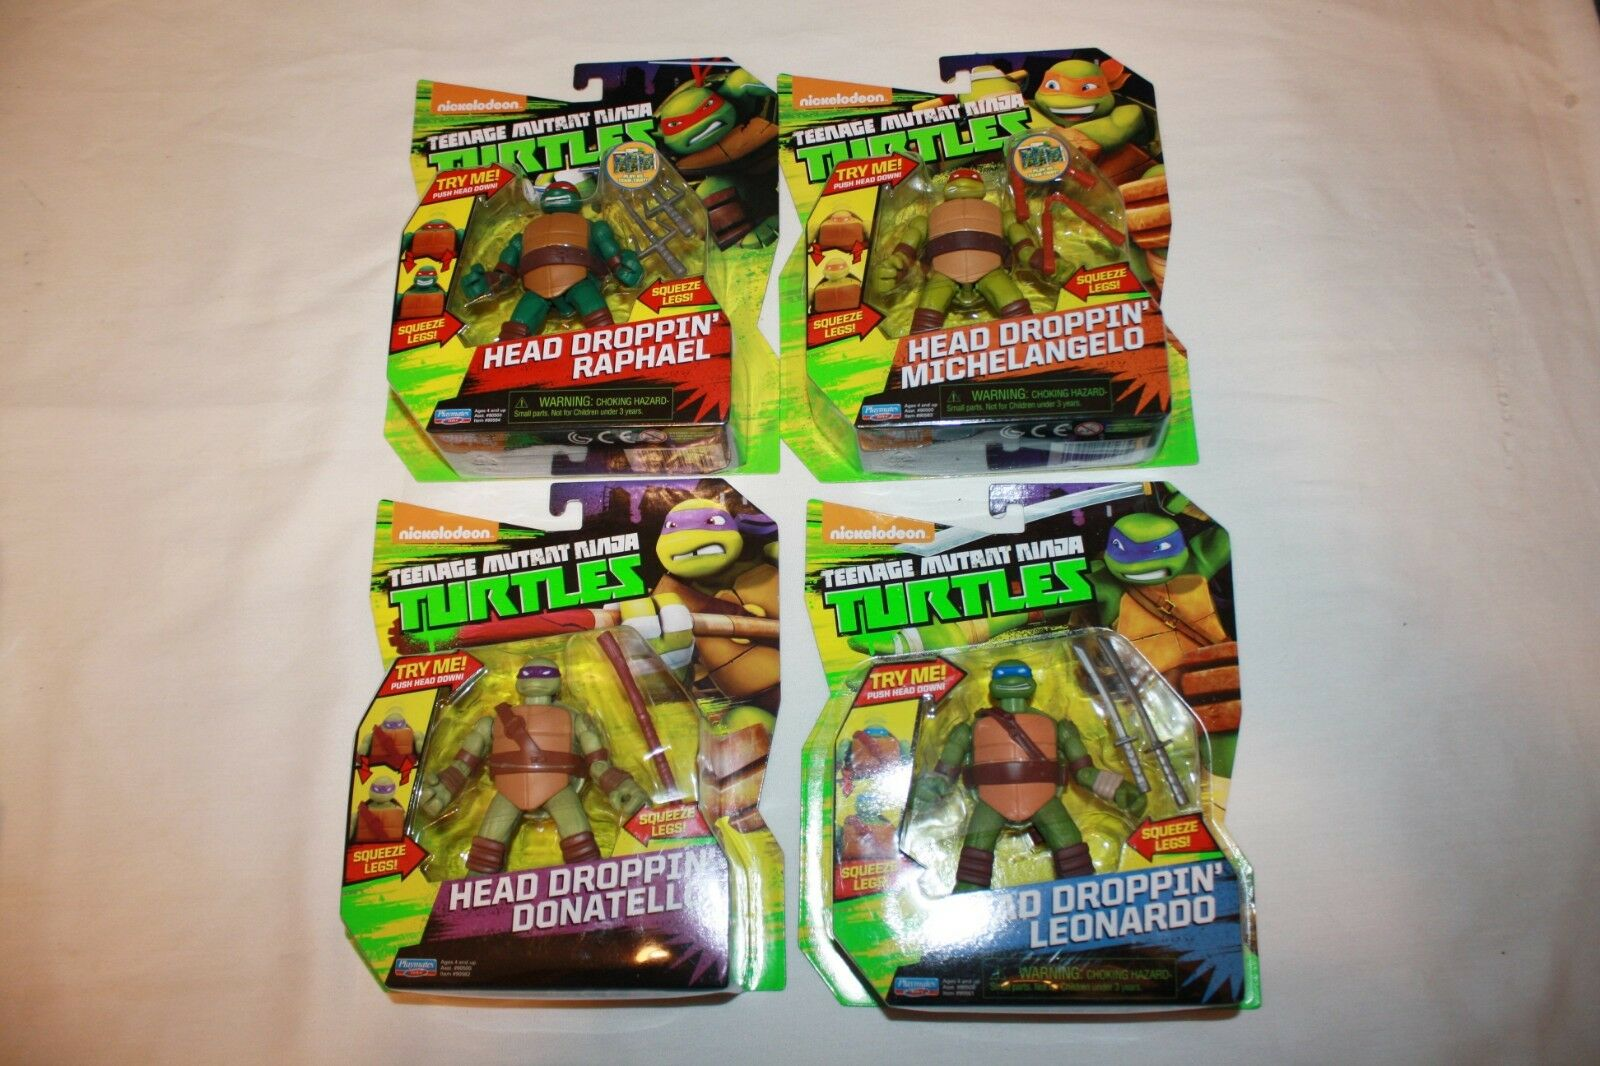 Teenage mutant ninja turtles tmnt kopf fallen lassen  x4 leo ralph nicht mike 2012